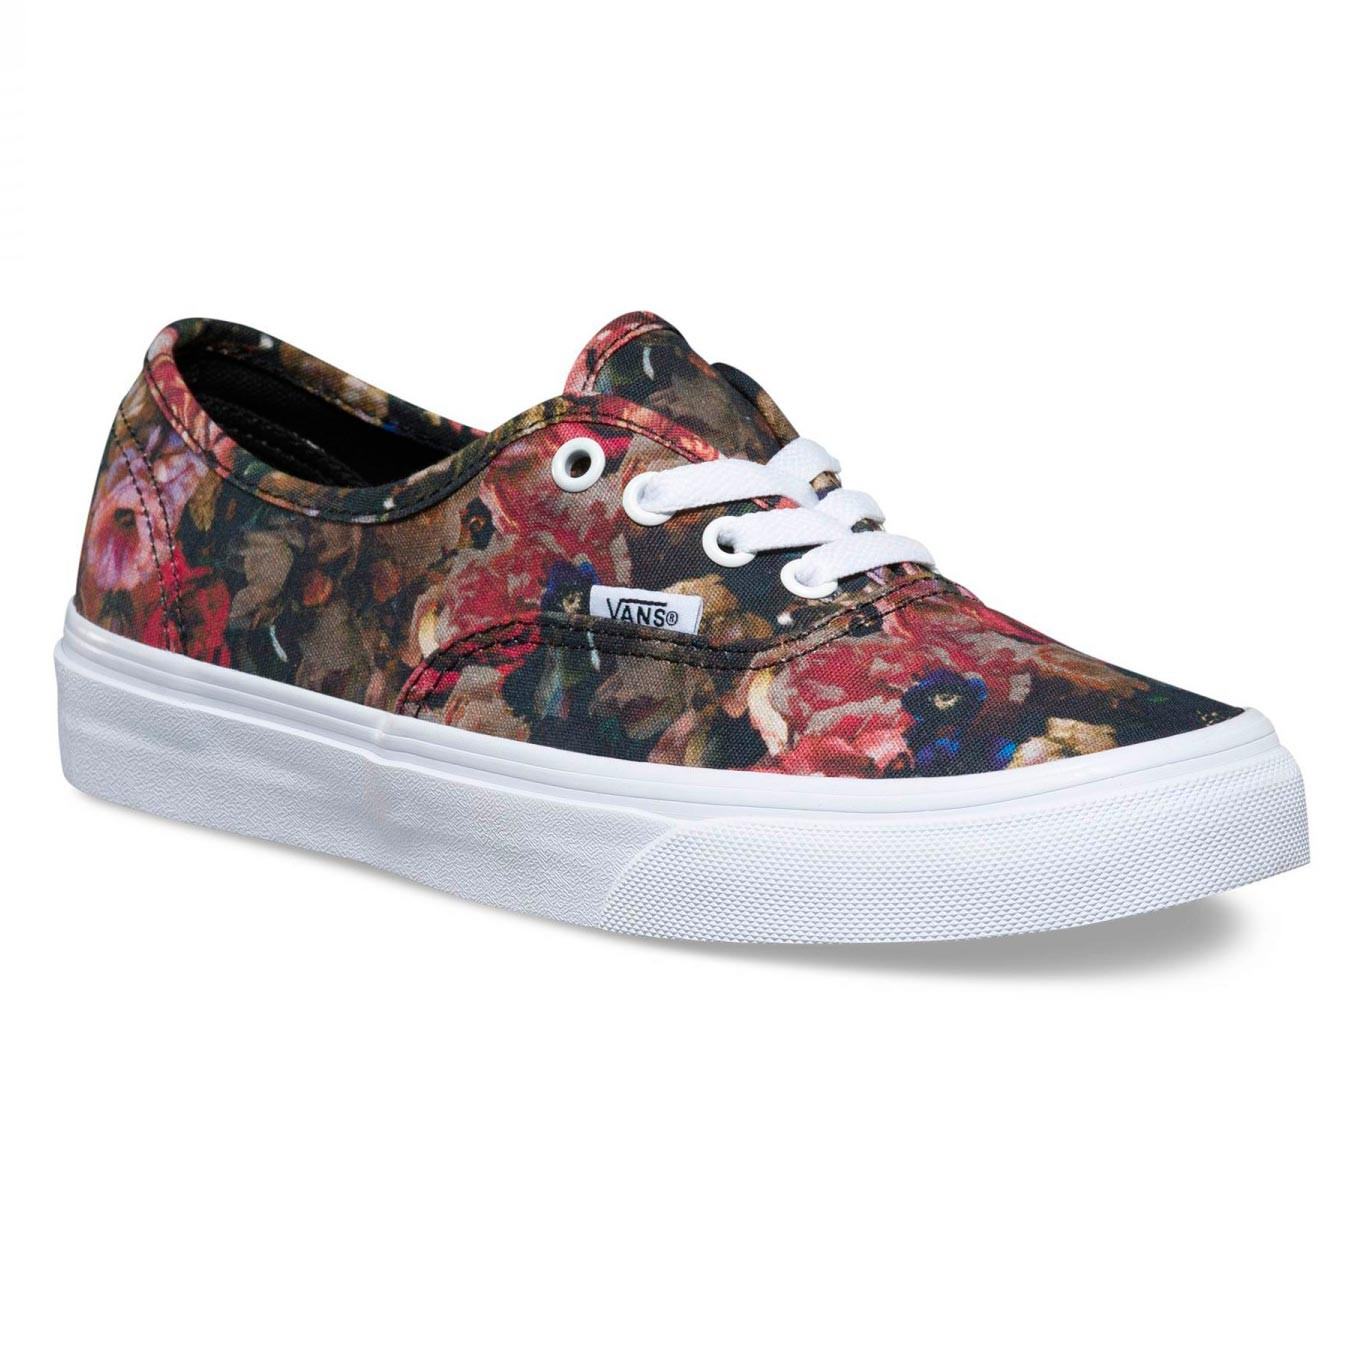 Tenisky Vans Authentic moody floral black/true white